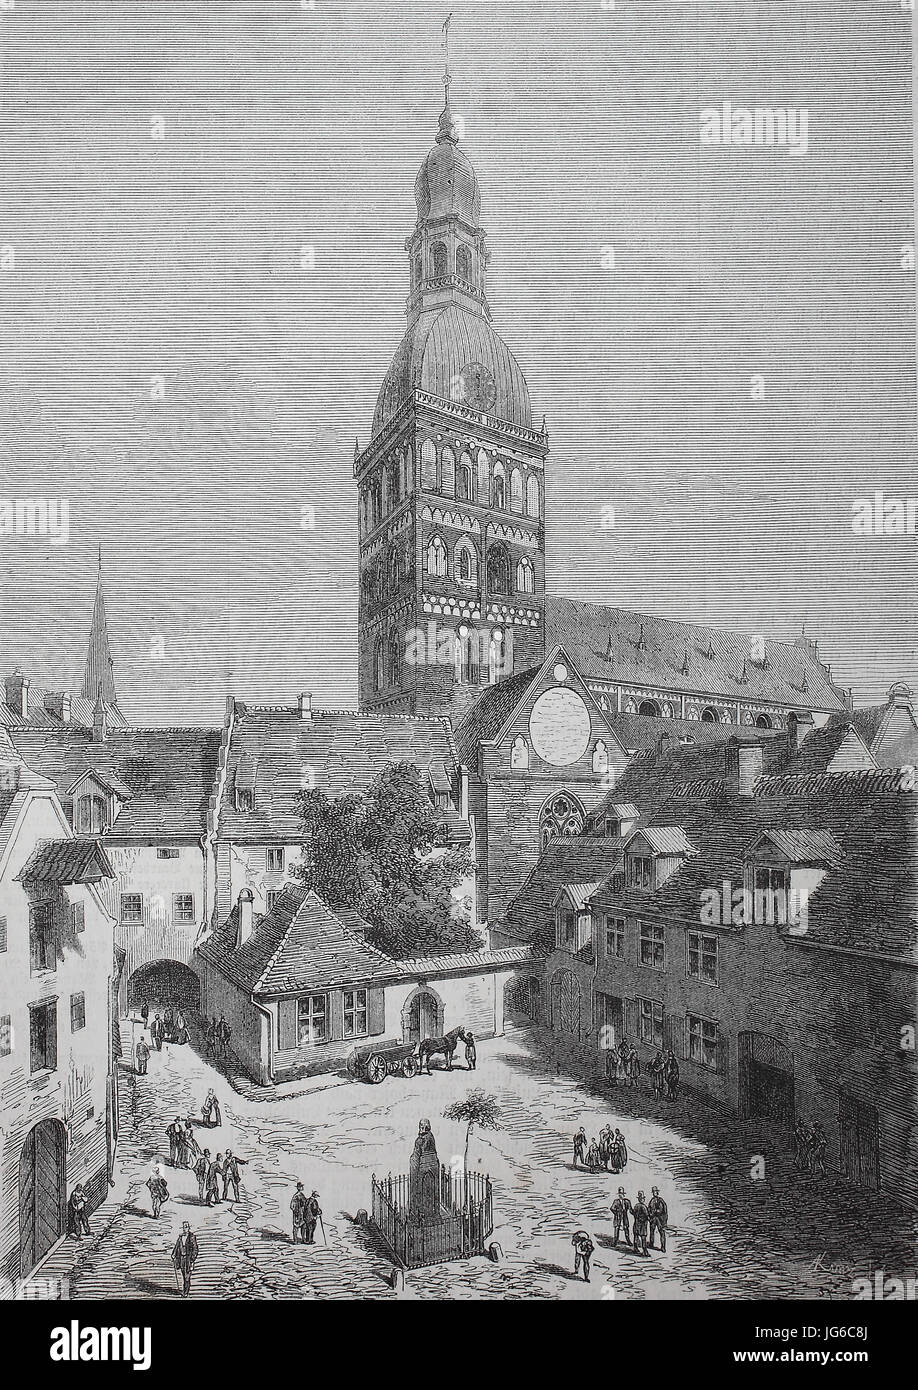 Digital improved:, city of Riga, Latvia, the Herder square and the old townhall, illustration from the 19th century - Stock Image